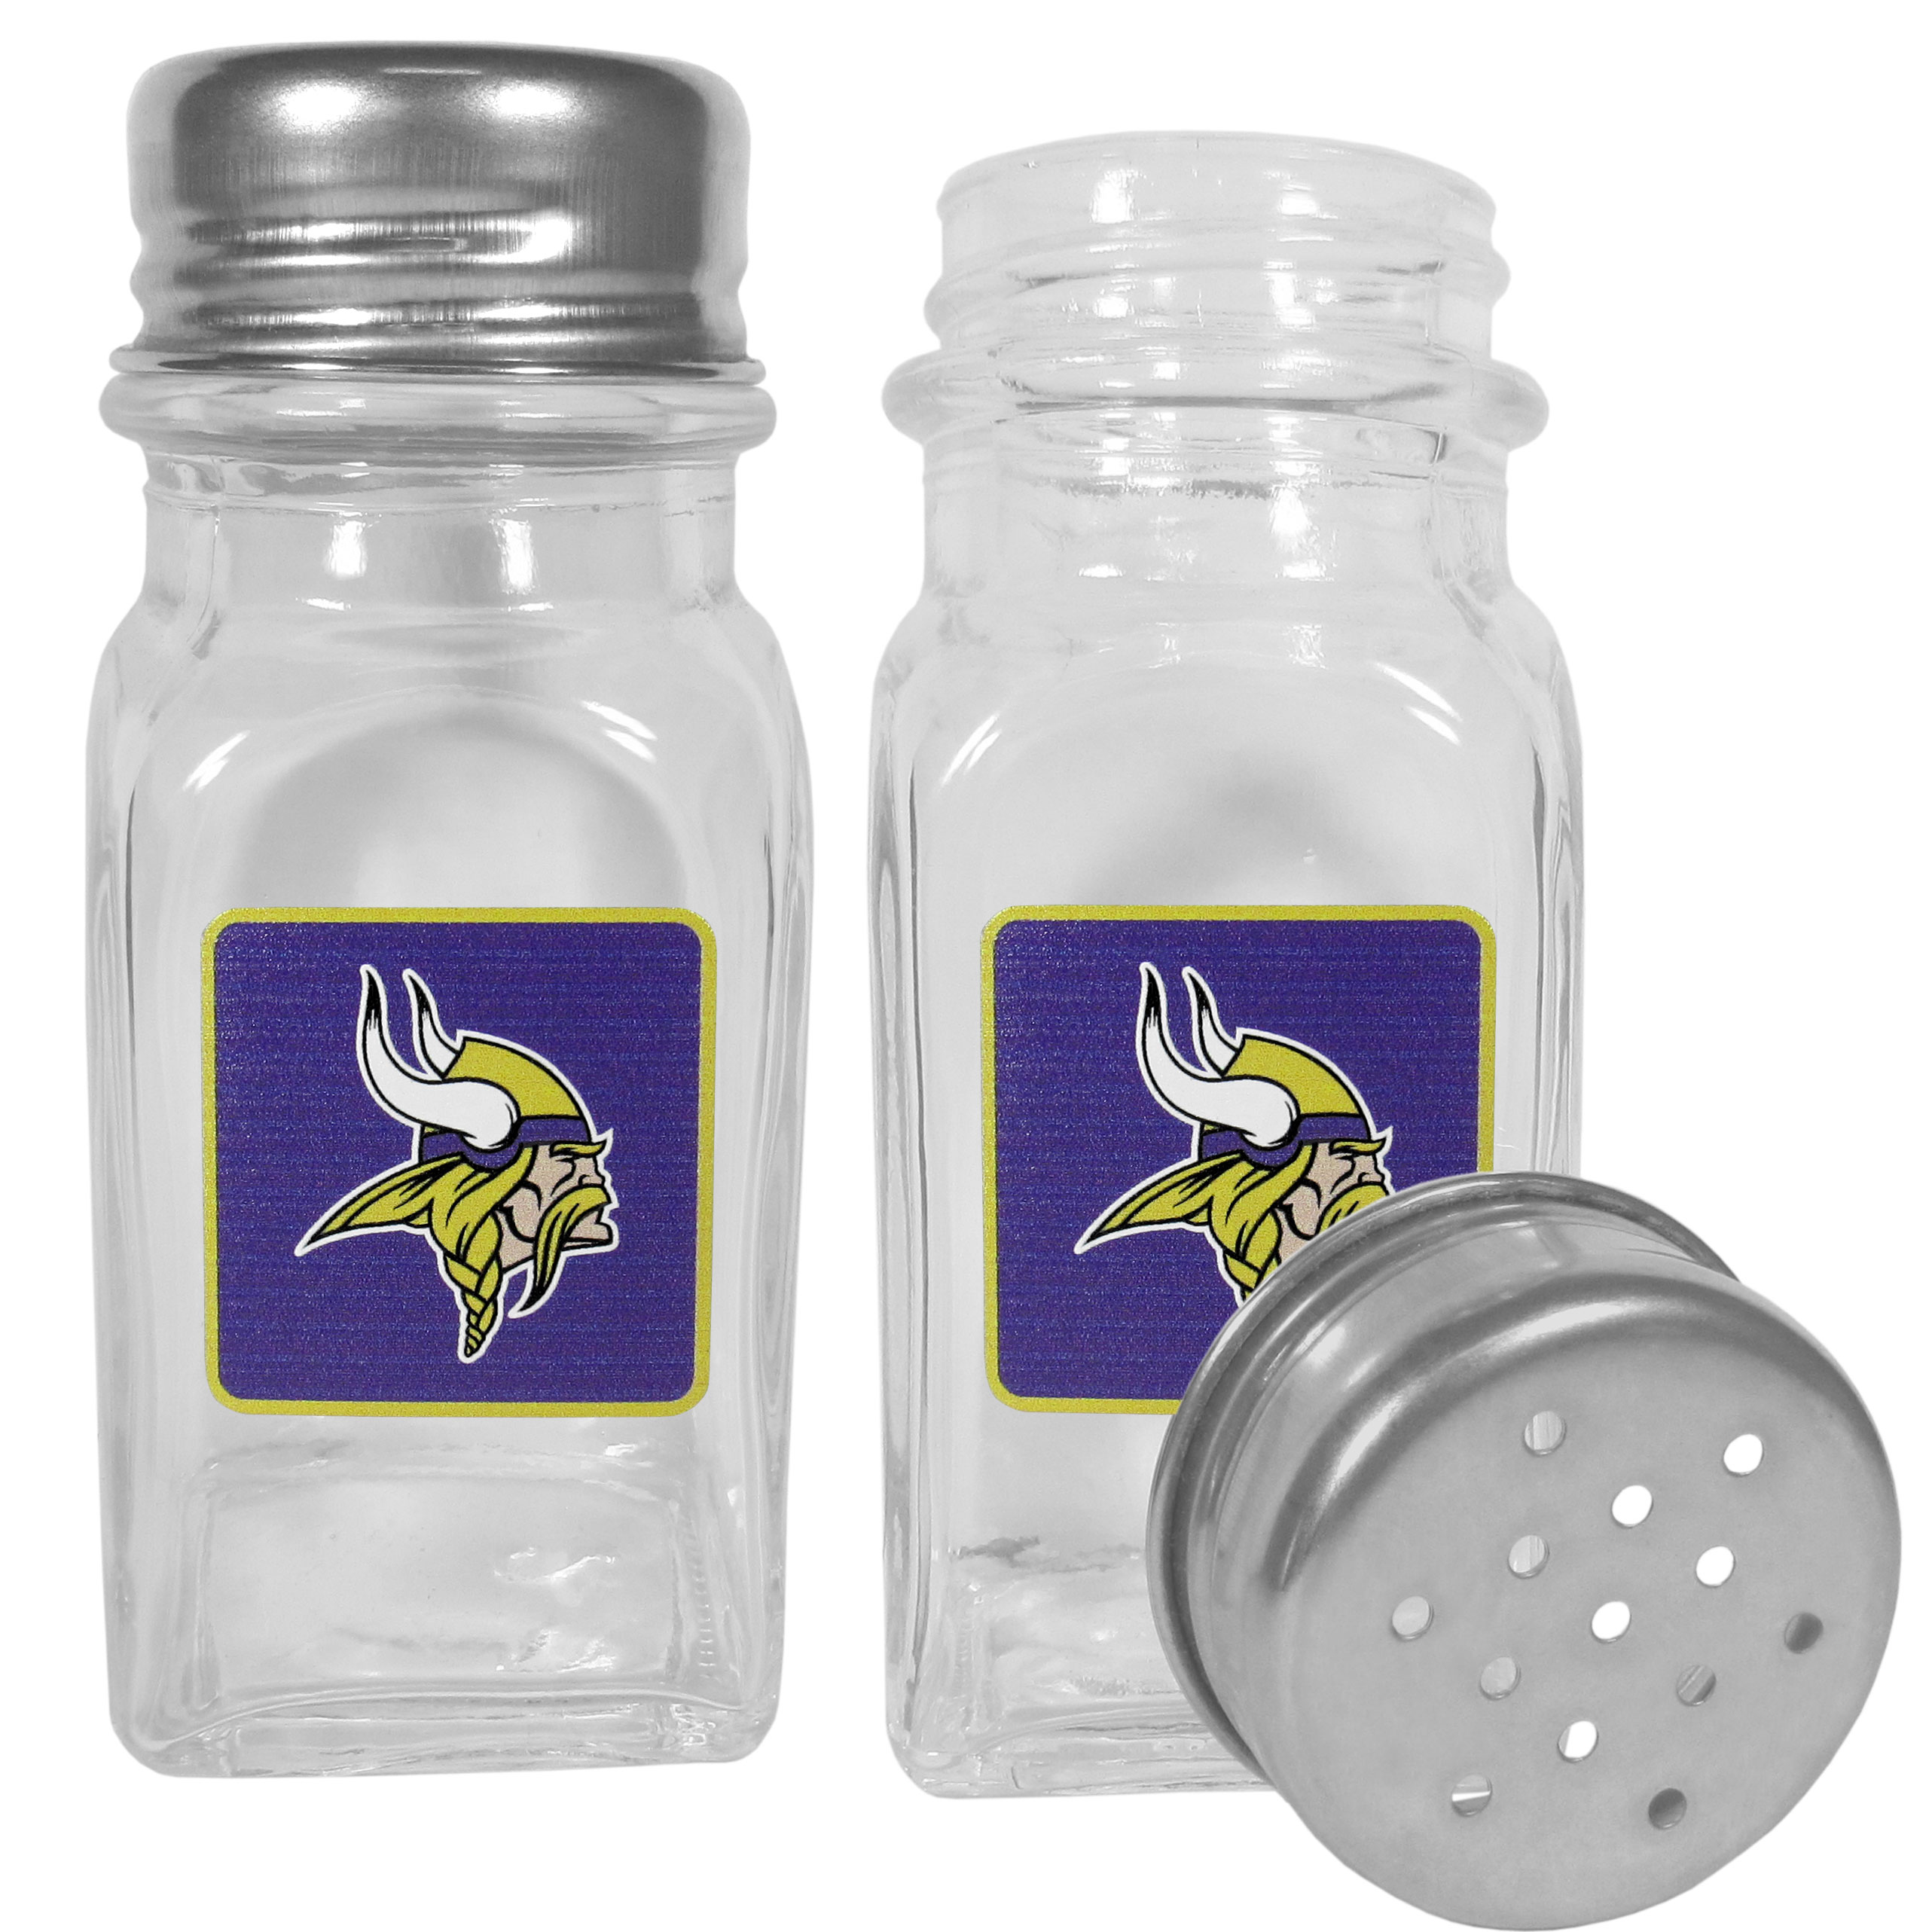 Minnesota Vikings Graphics Salt and Pepper Shaker - No tailgate party is complete without your Minnesota Vikings salt & pepper shakers featuring bright team logos. The diner replica salt and pepper shakers are glass with screw top lids. These team shakers are a great grill accessory whether you are barbecuing on the patio, picnicing or having a game day party.